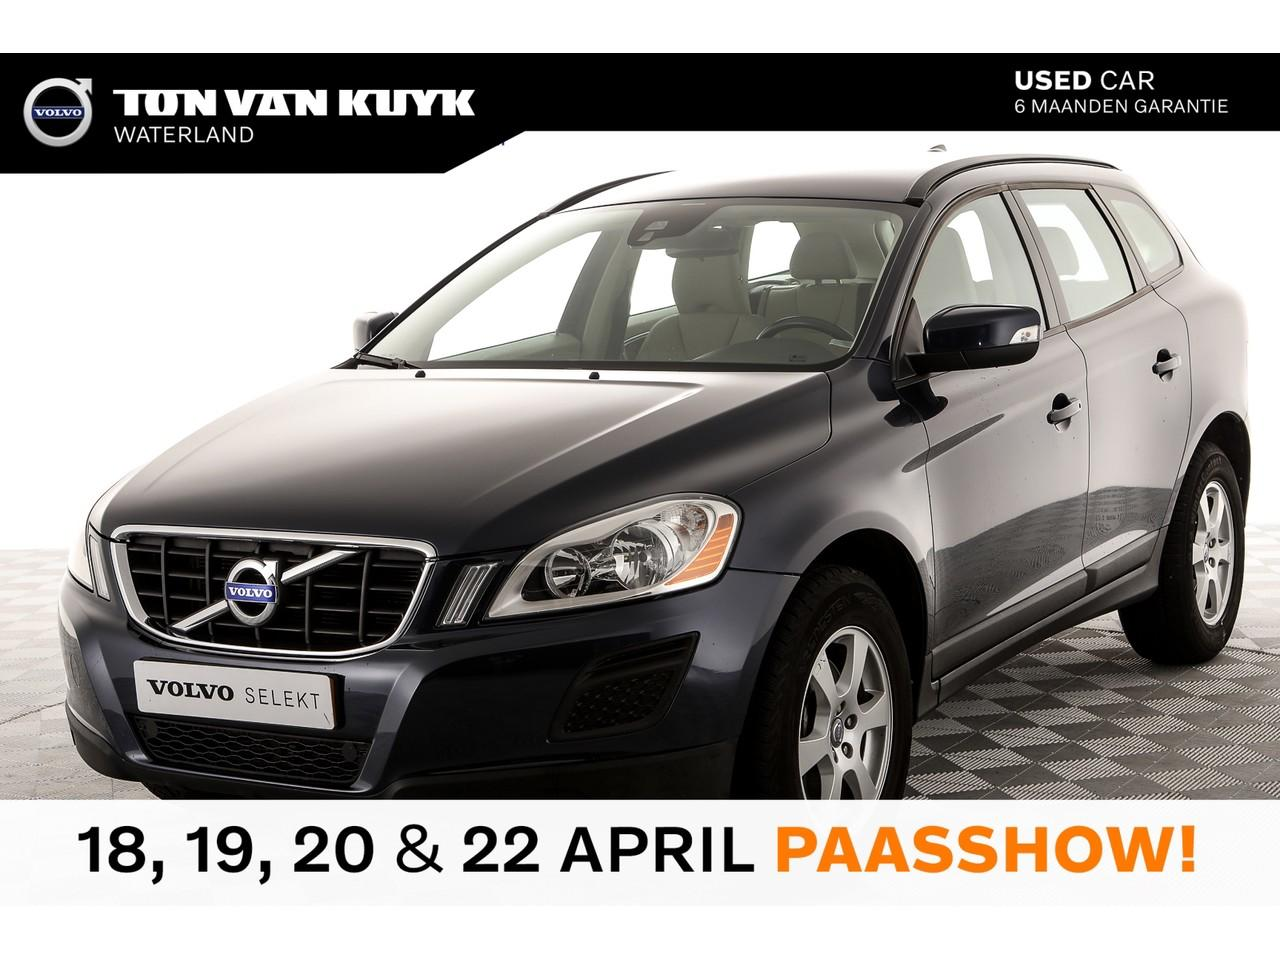 Volvo Xc60 D3 geartronic kinetic / navi / climate / cruise